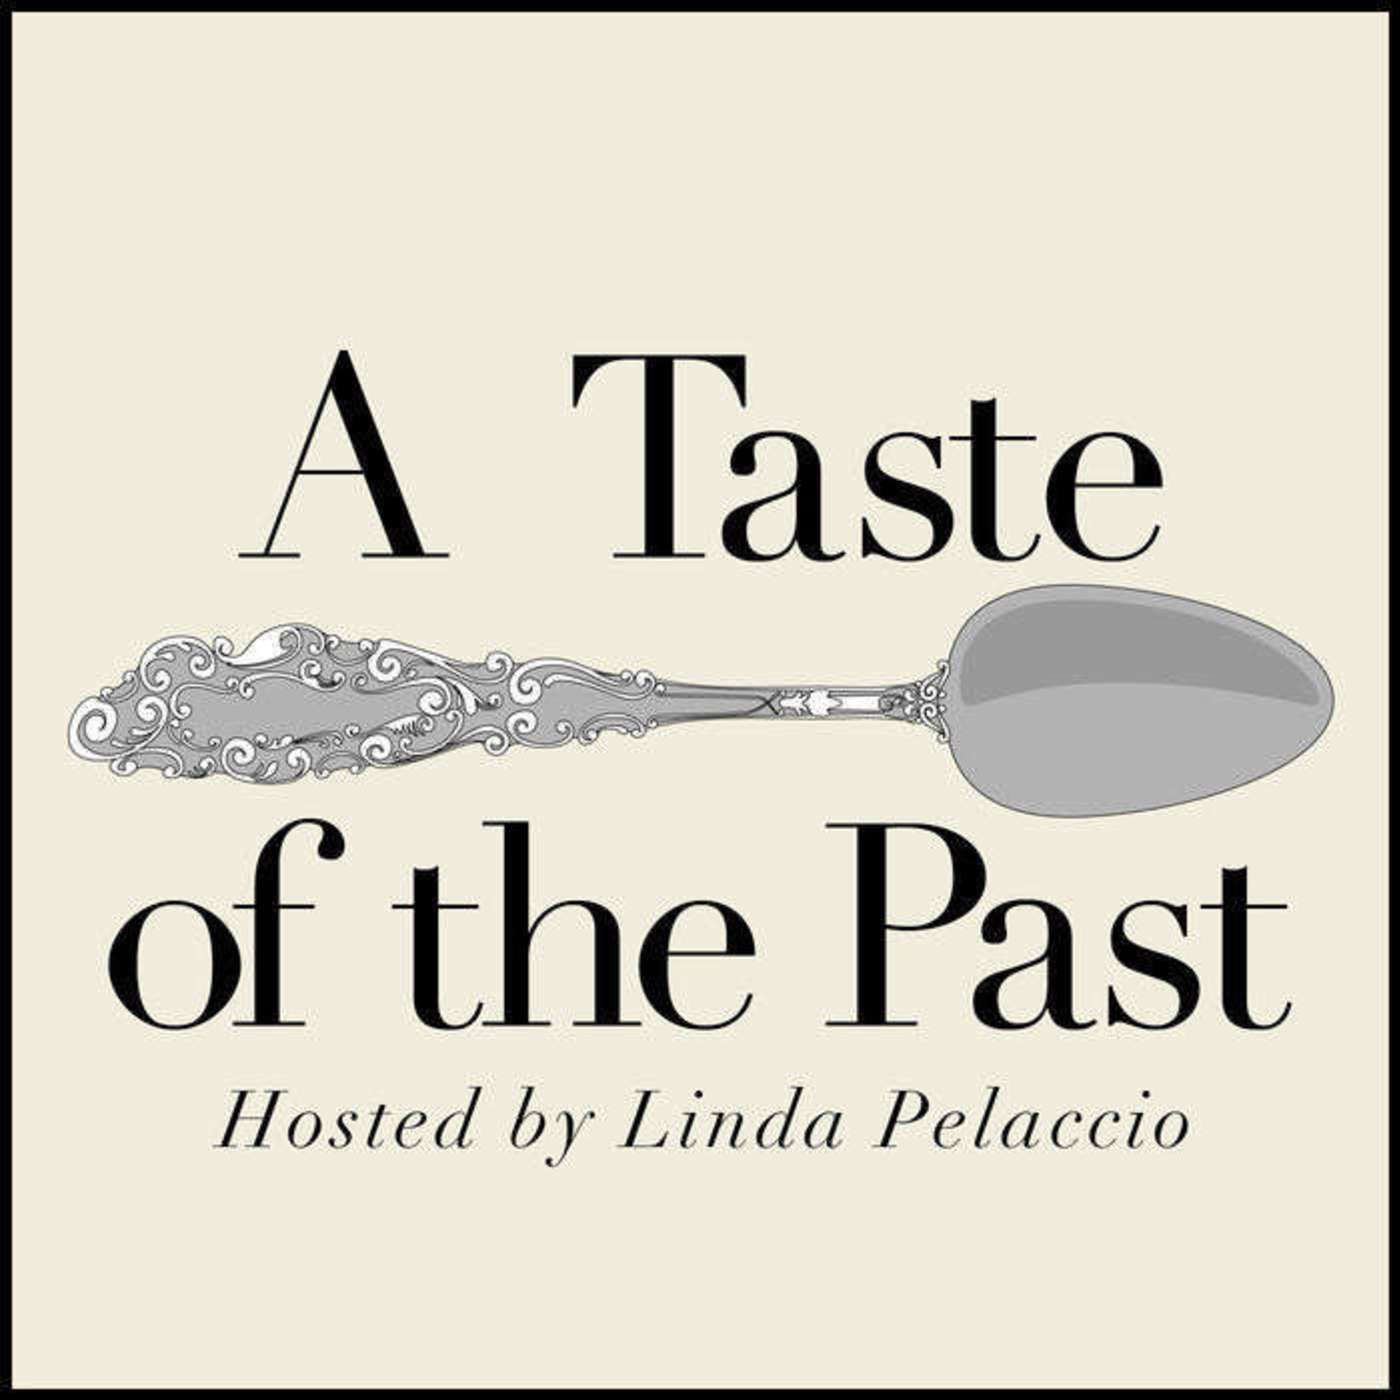 Episode 48: The Ancient Legacy of the Mediterranean Diet